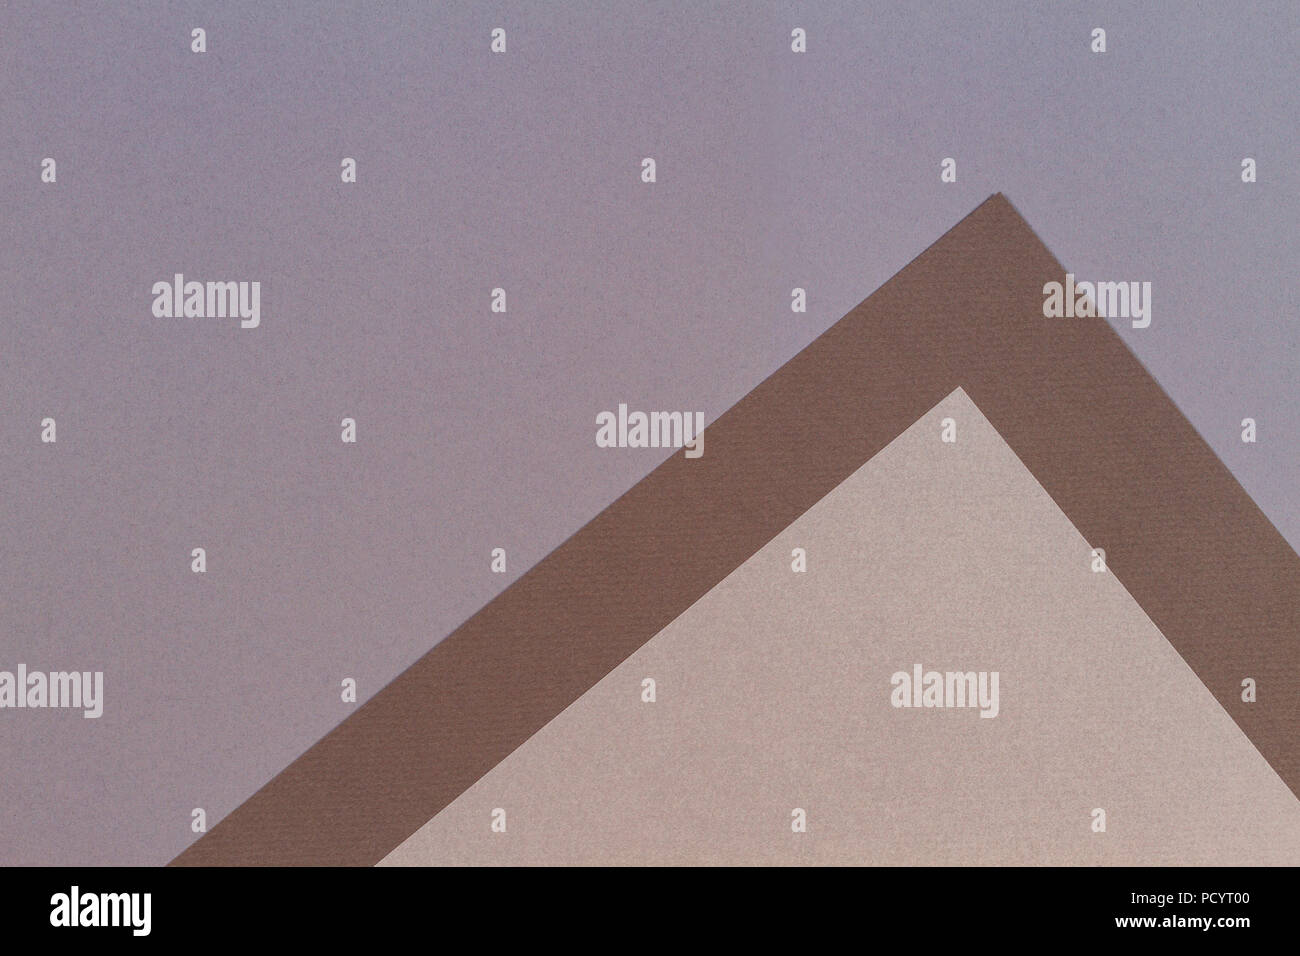 Color papers geometry composition background with gray beige and brown tones Stock Photo